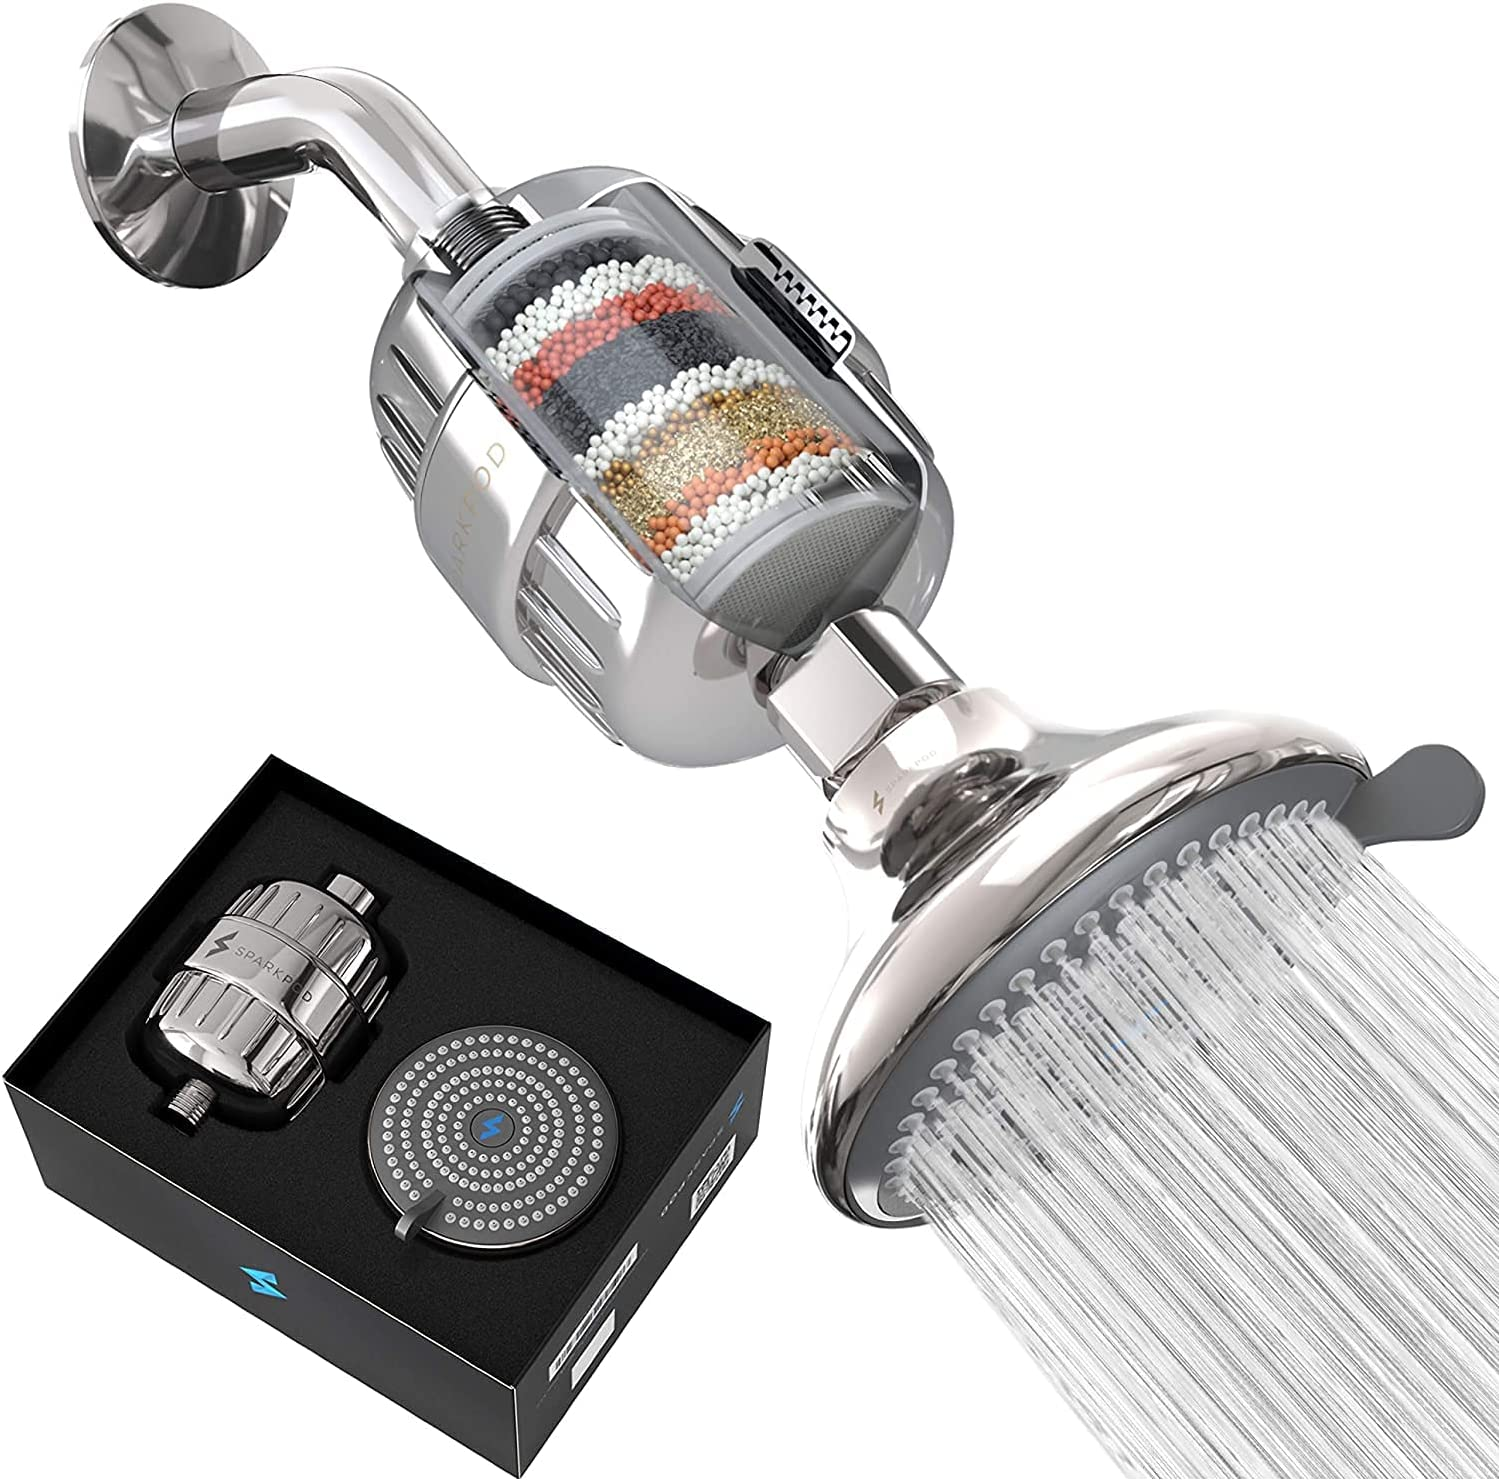 SparkPod Filter San Diego Mall 5 ☆ popular Shower Head - for Water High-Pressure Filtration